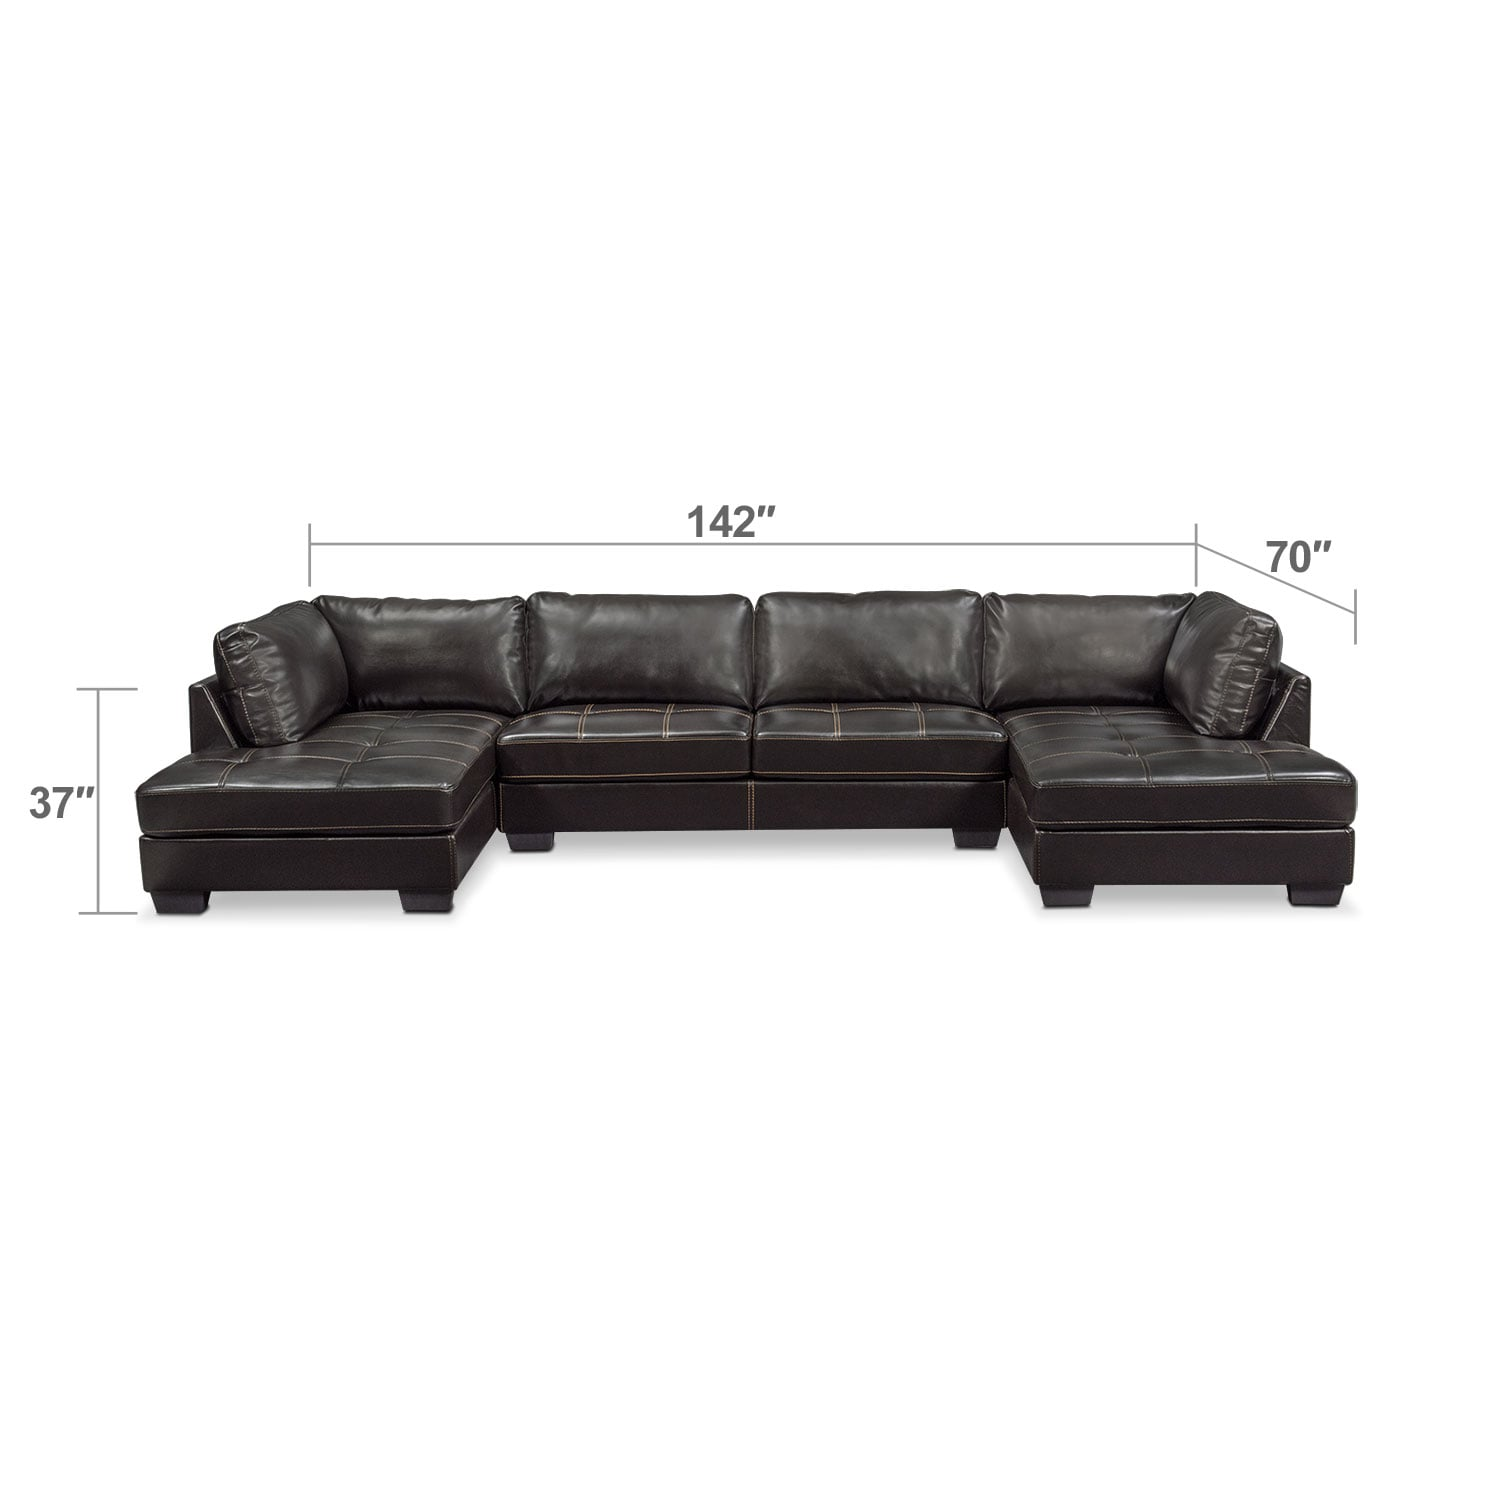 Living Room Furniture - Santana 3-Piece Sectional - Black